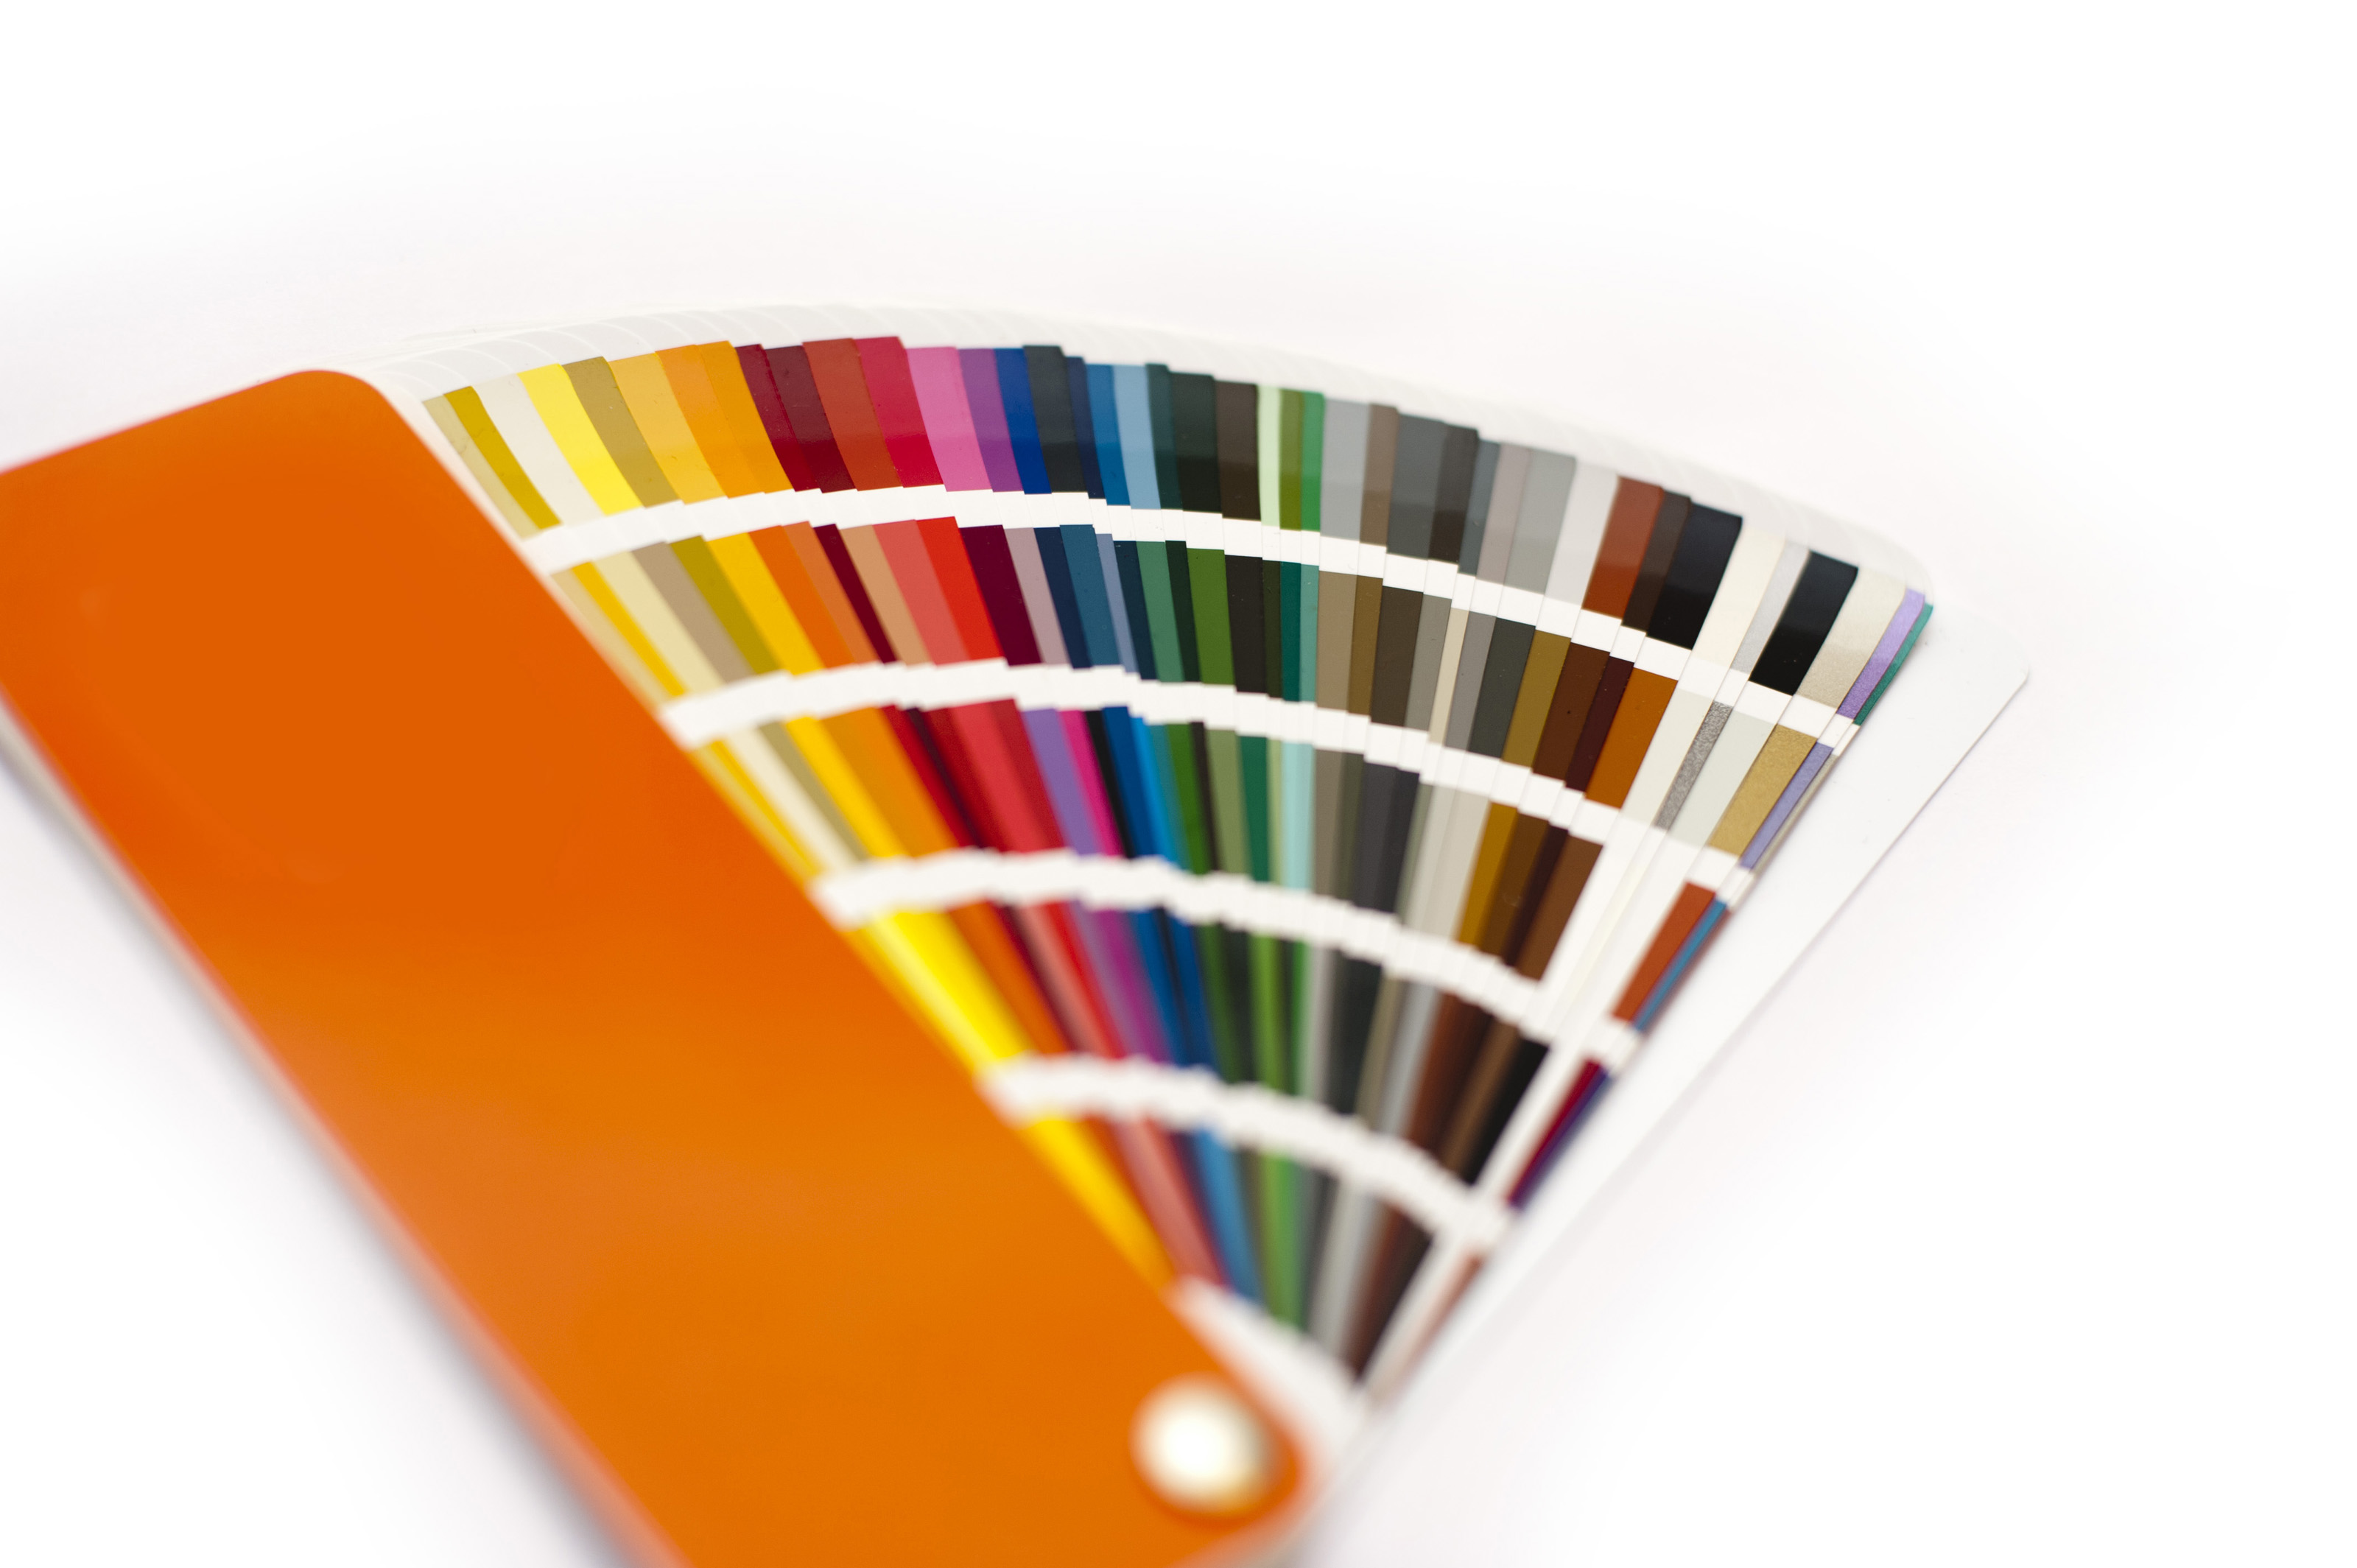 Free Stock Photo 10778 Color Chart For Painting Or Interior Decorating